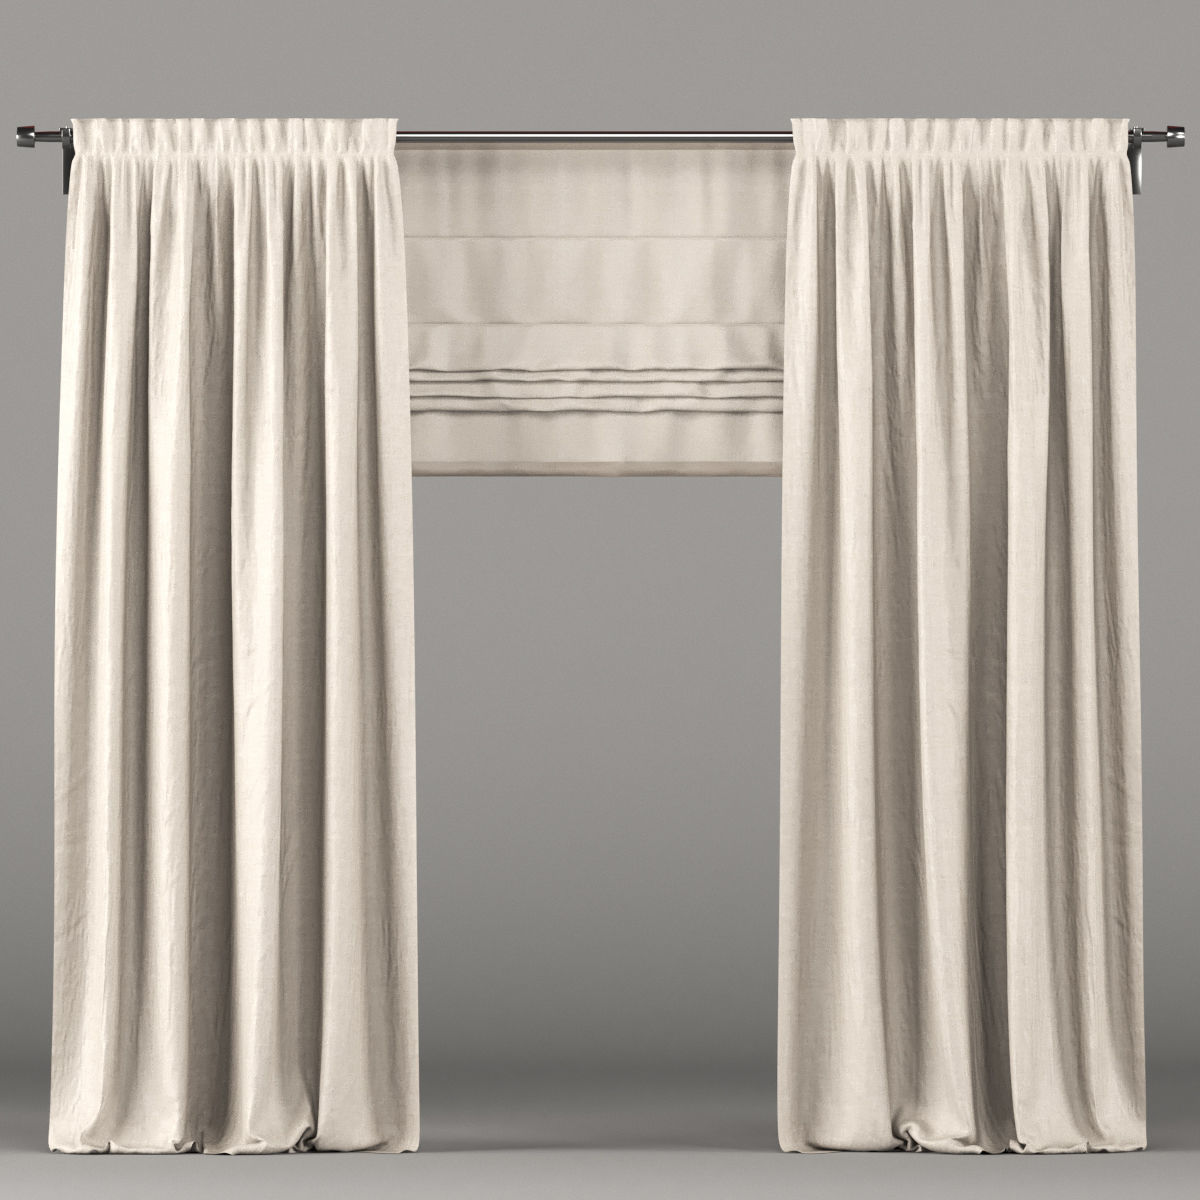 Beige curtains and roman blinds